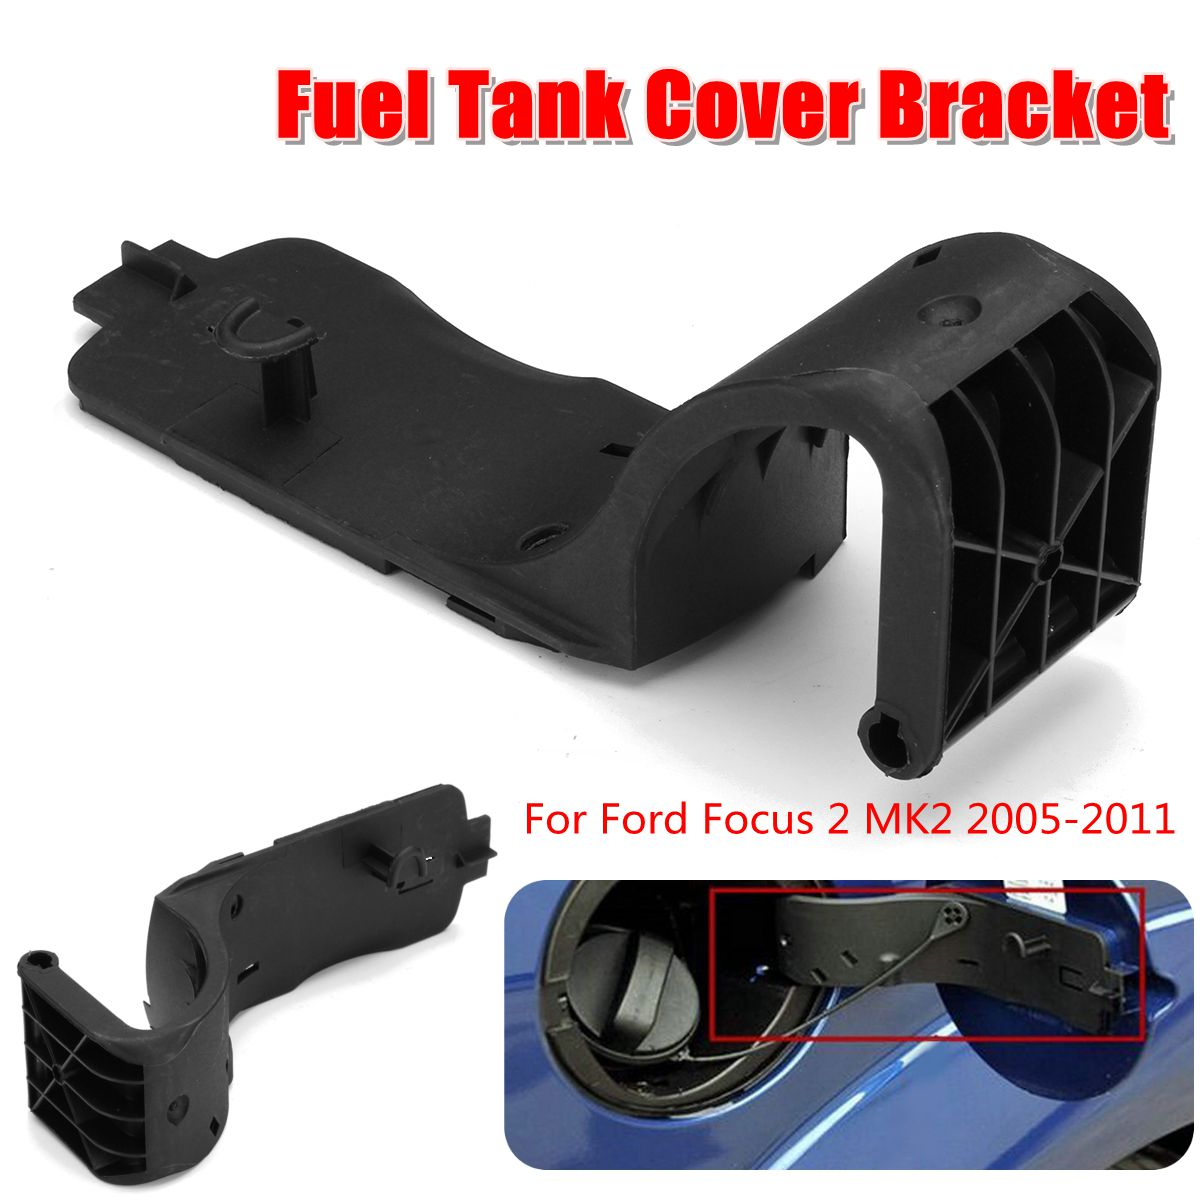 Fuel Tank Gas Tank Cap Cover Mount Bracket Replacement For Ford For Focus 2 MK2 2005 2006 2007 2008 2009 2010 2011